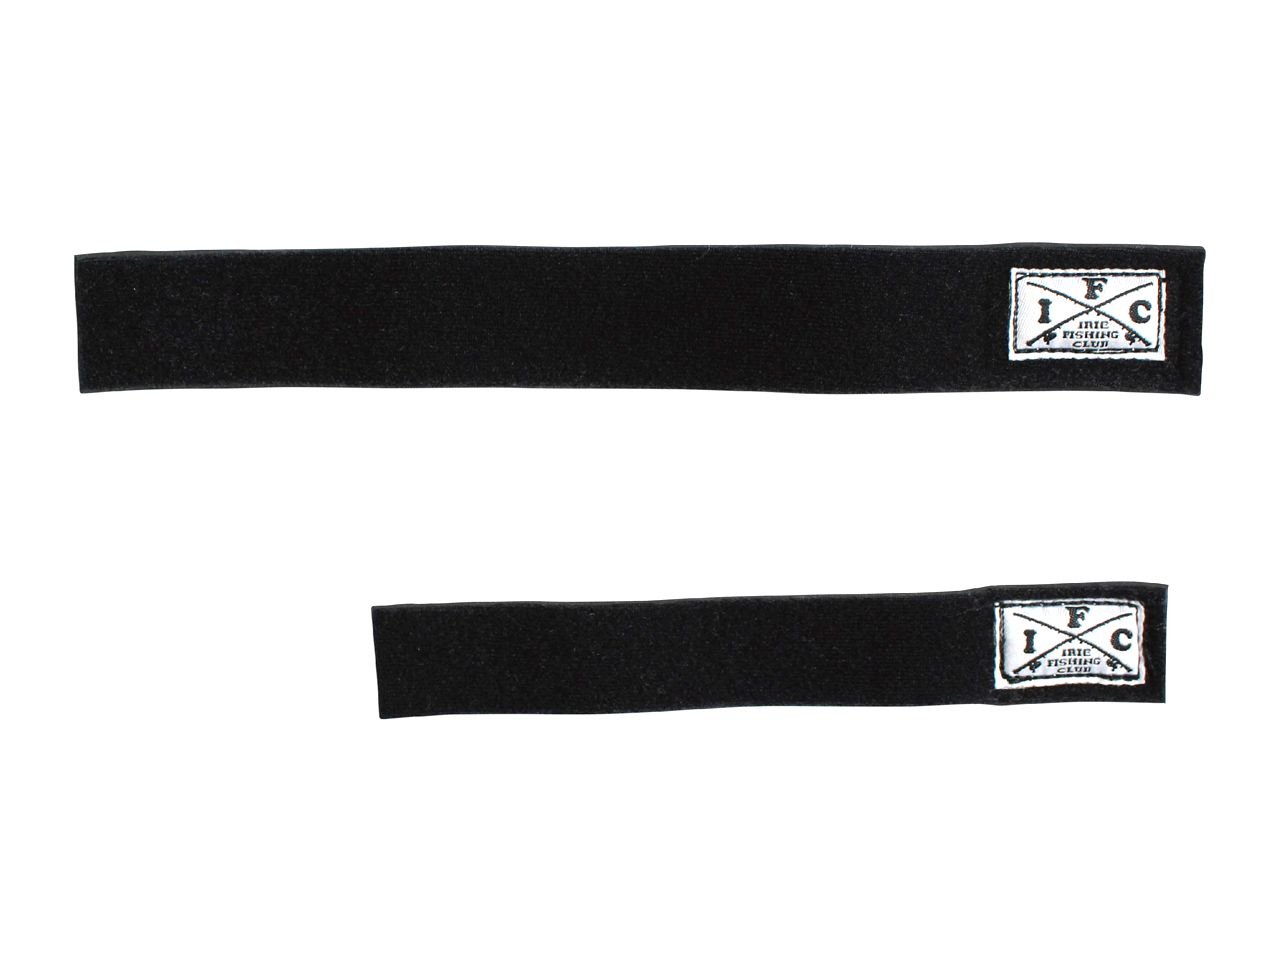 CROSS ROD BELT -IRIE FISHING CLUB-